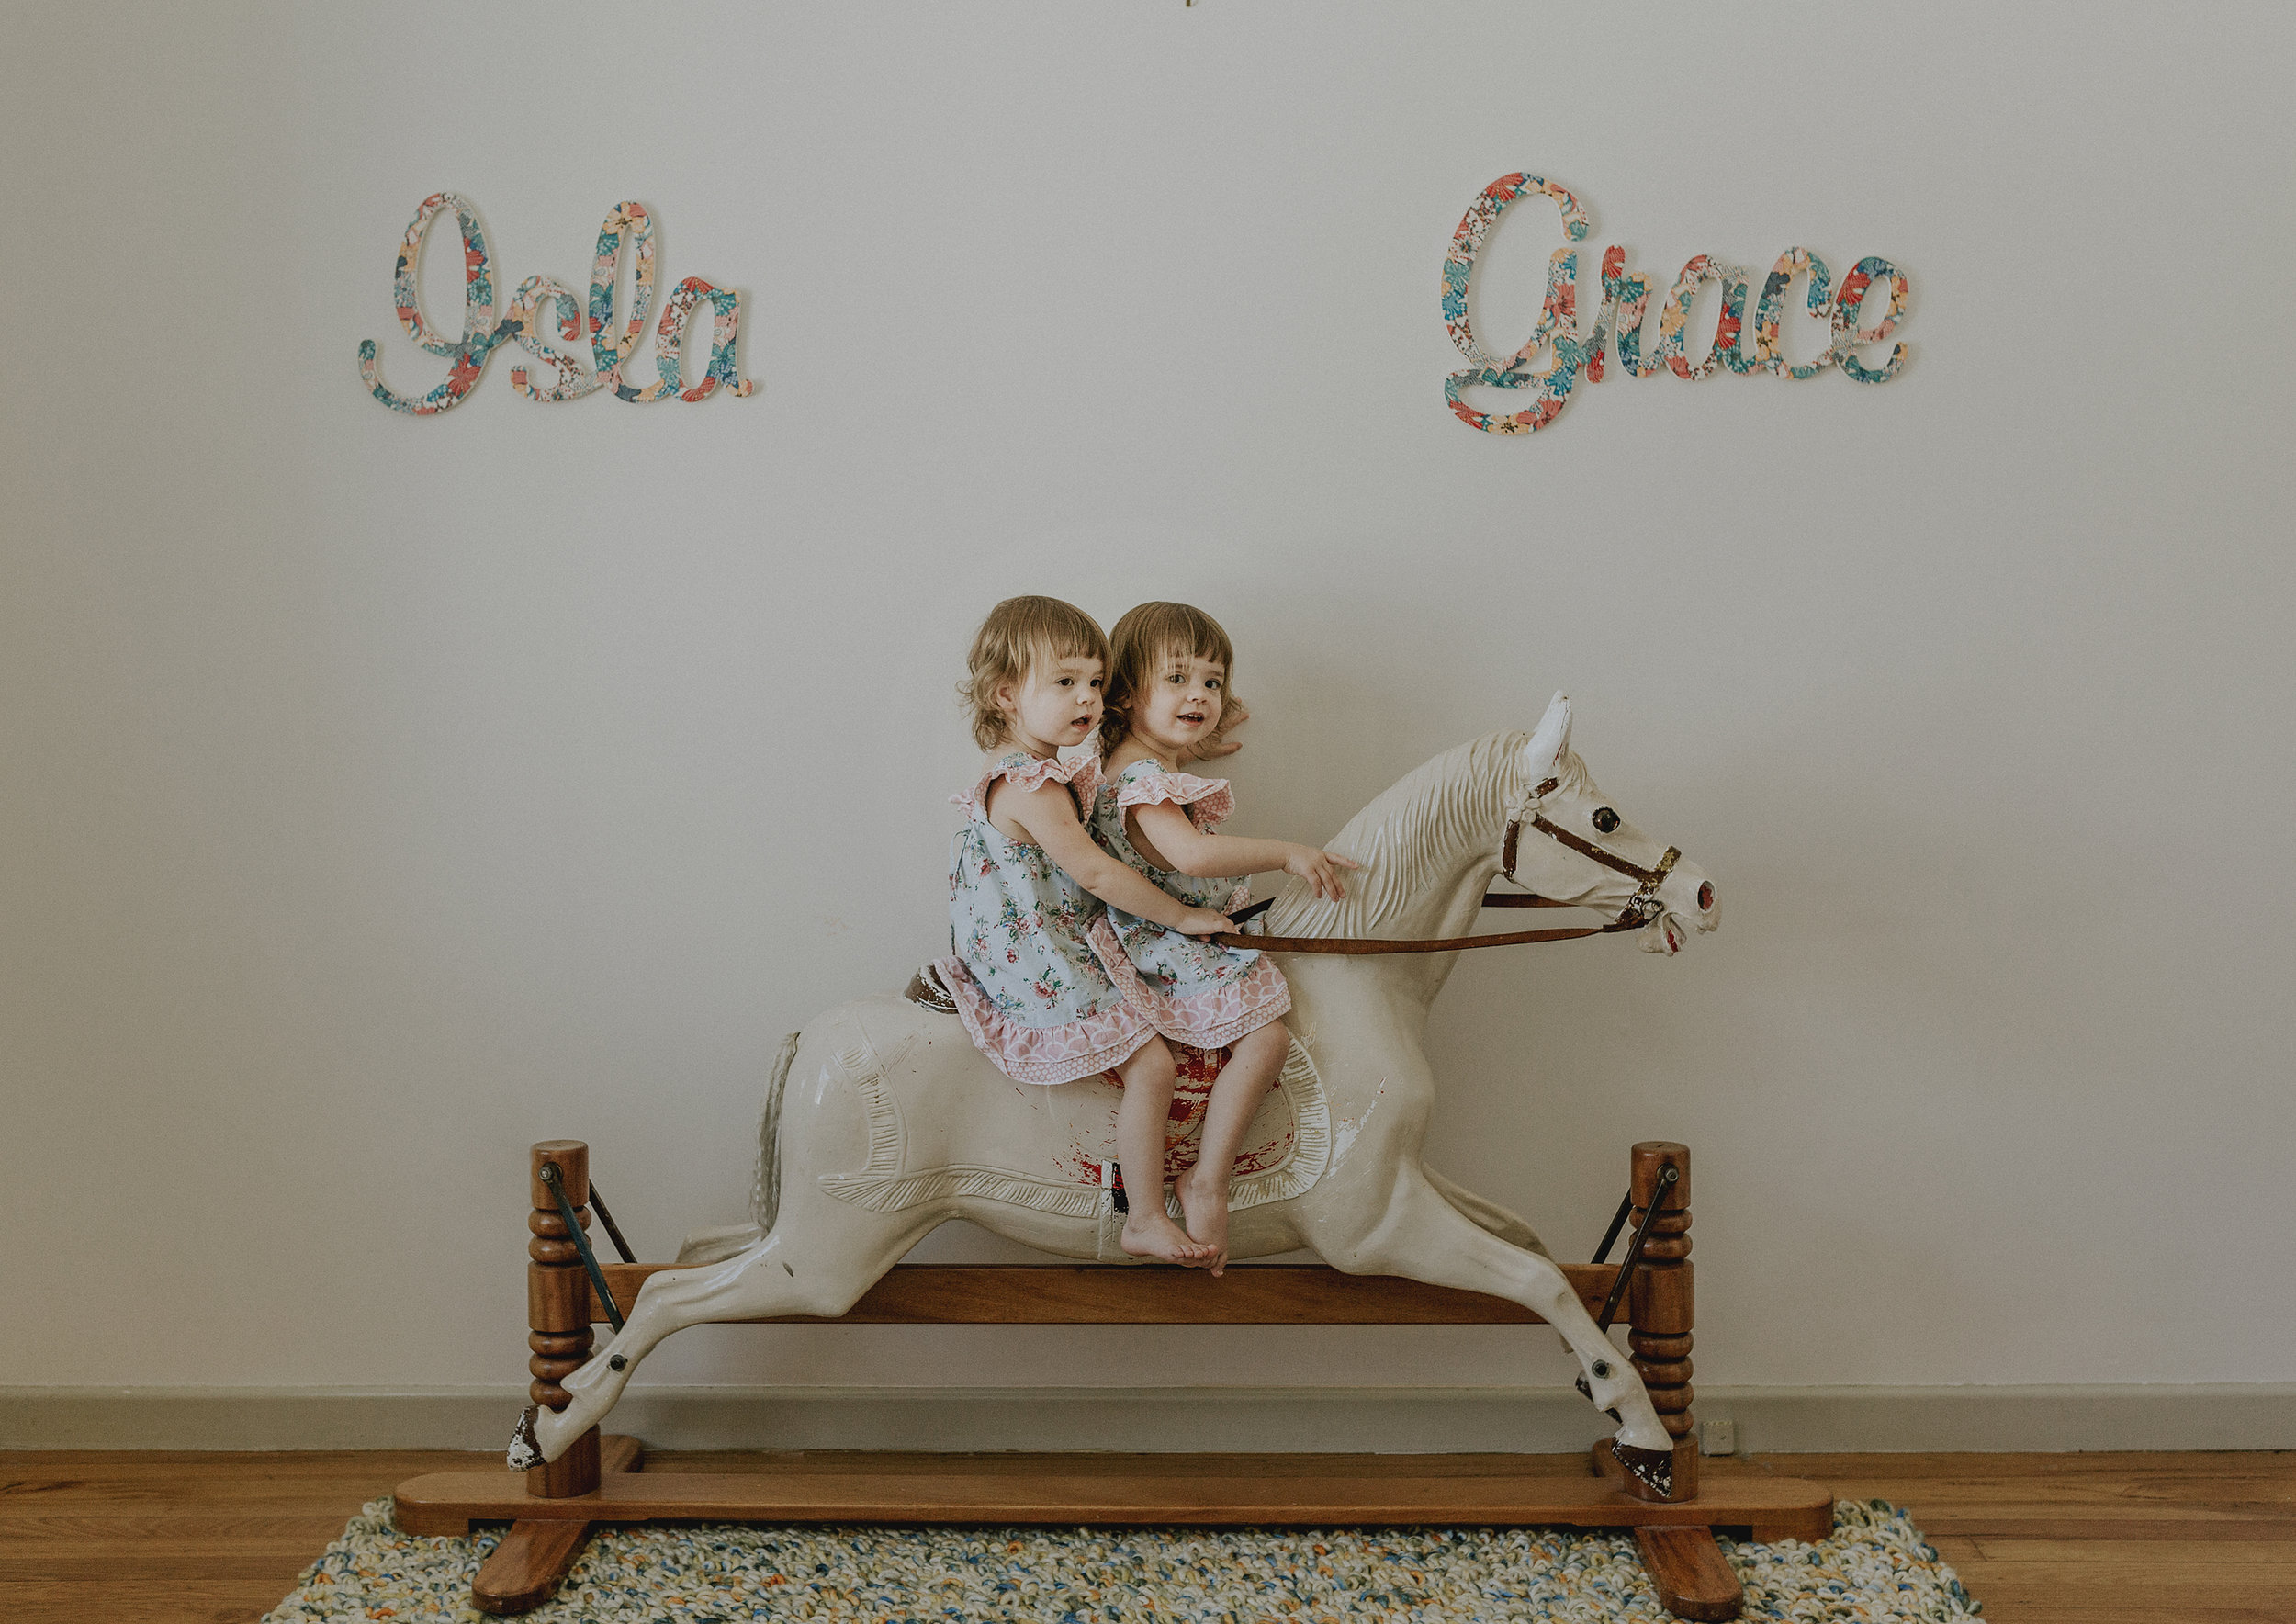 Toddler's riding on their toy horse